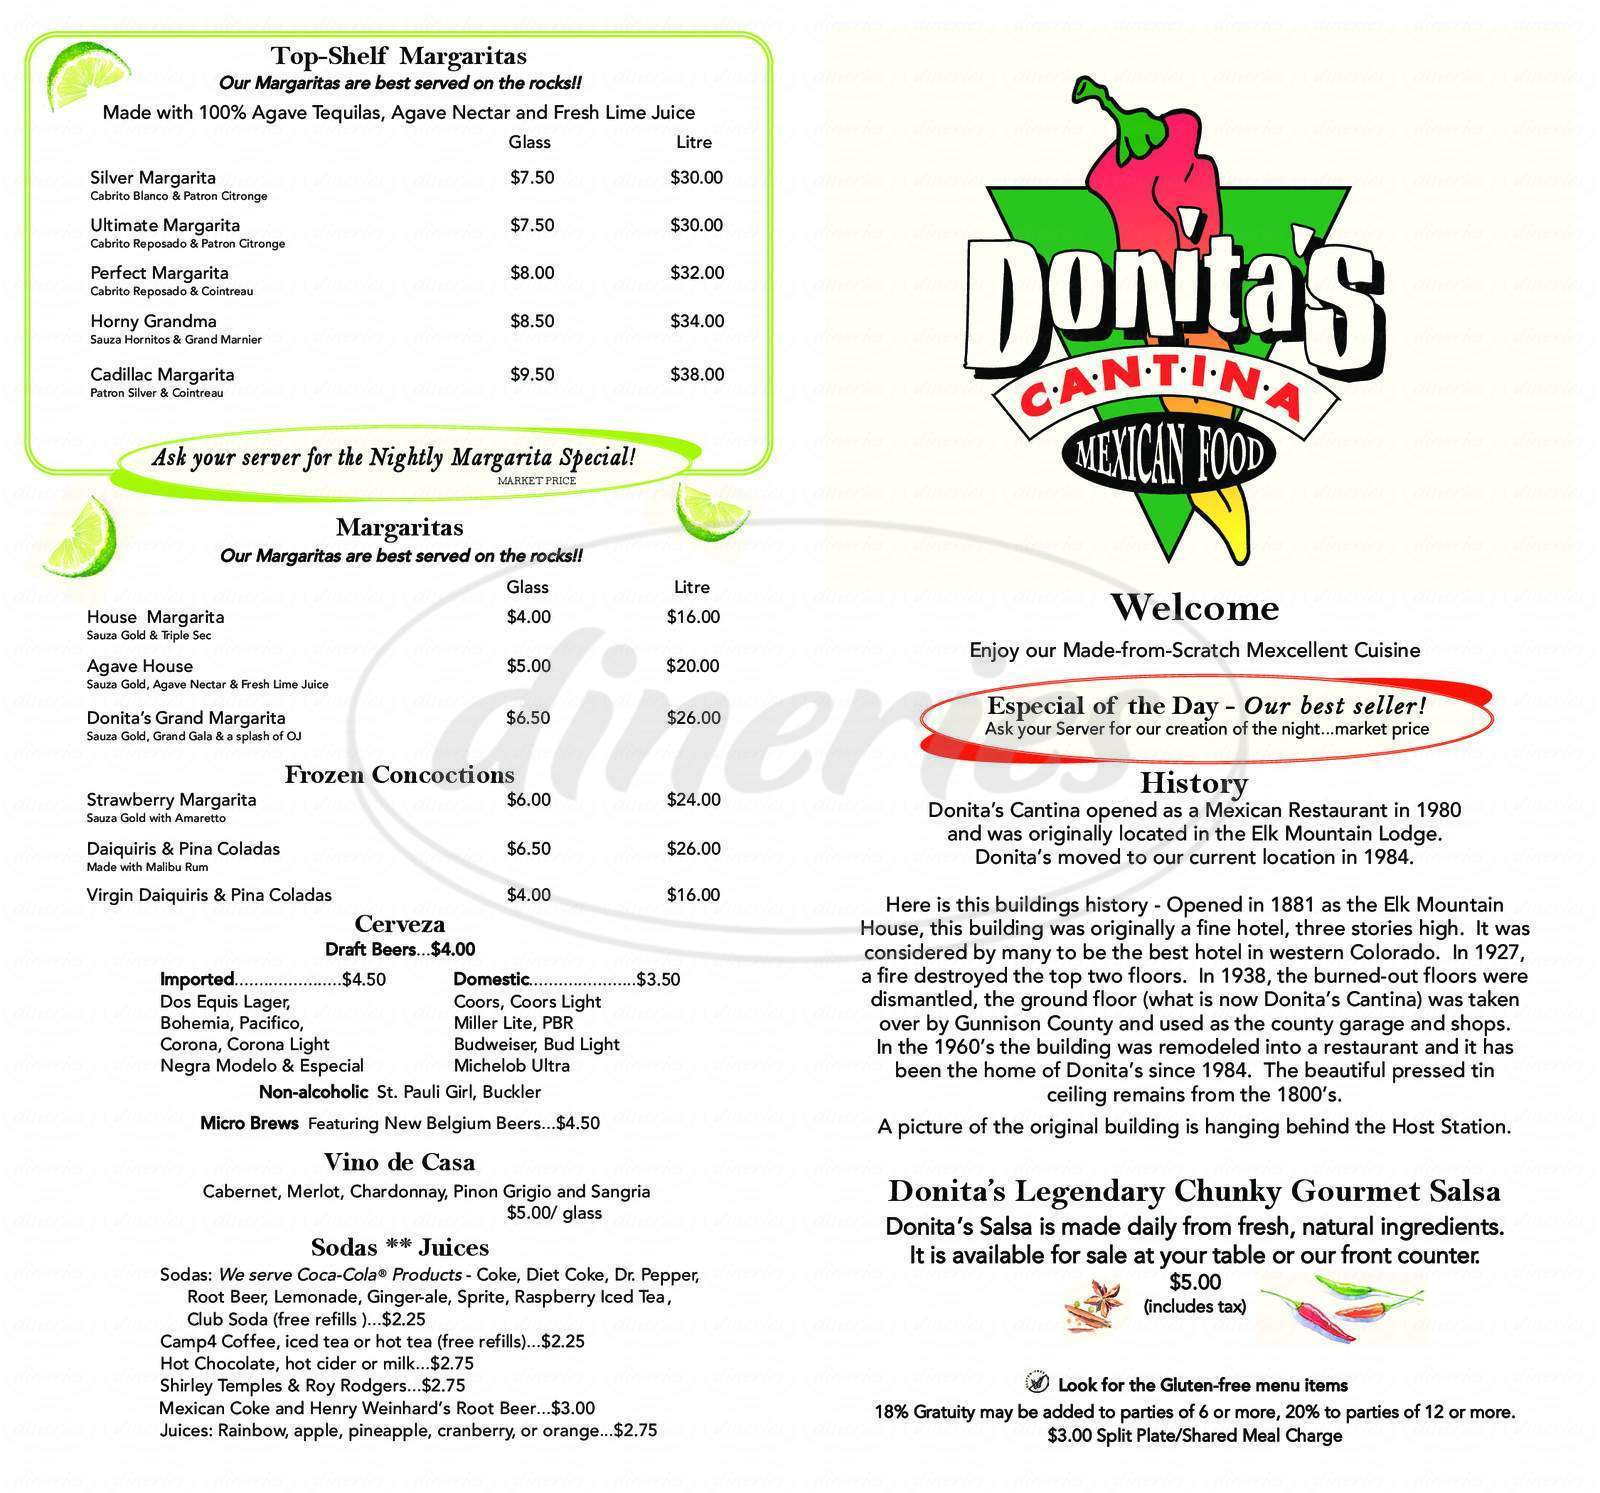 menu for Donita's Cantina